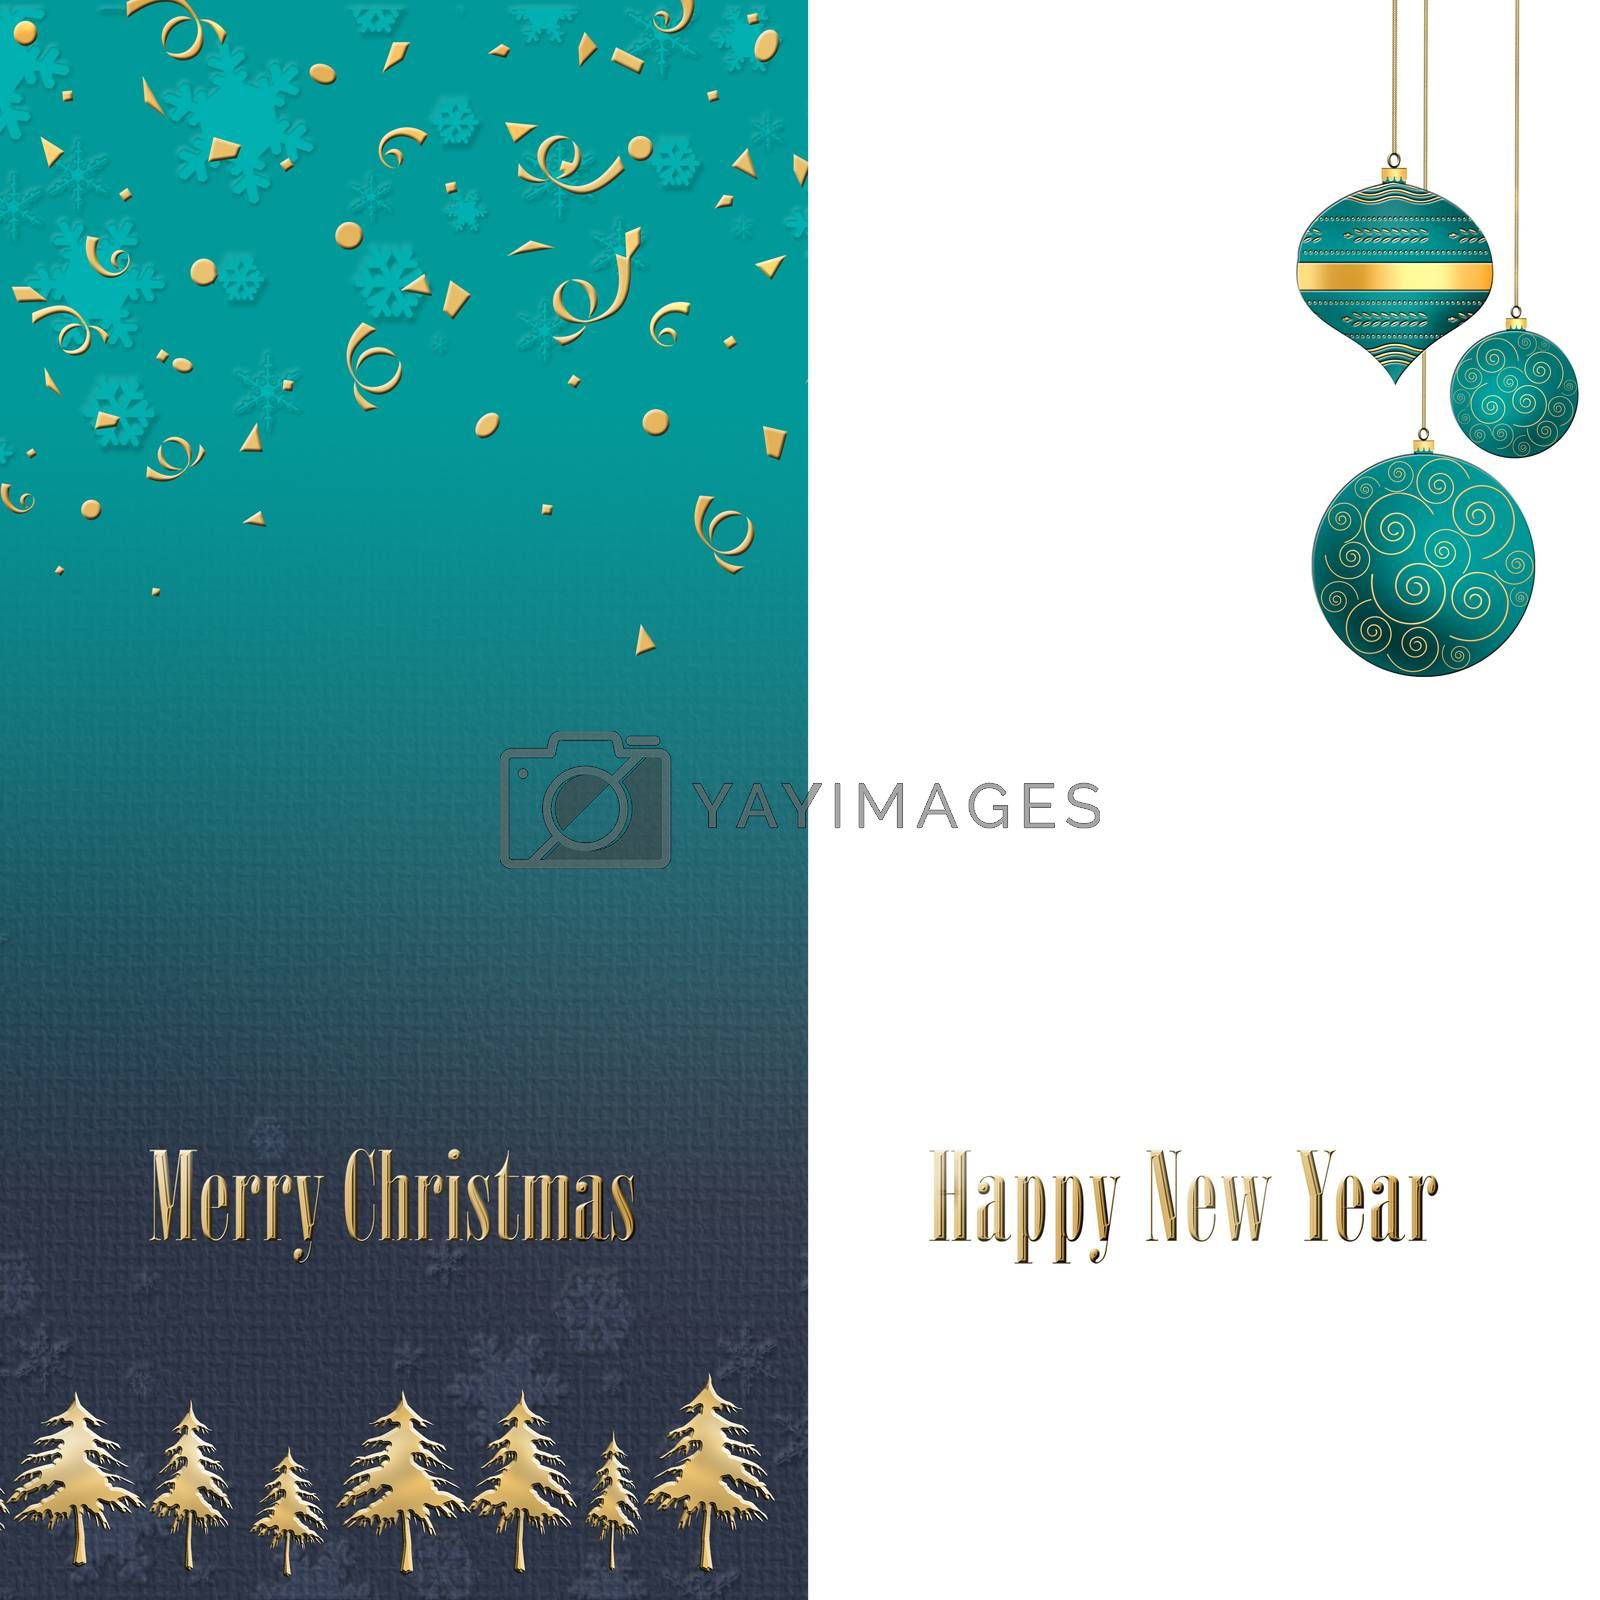 Elegant Christmas background with turquoise blue balls with gold ornament on white green background. Copy space, mock up, place for text. 3D illustration